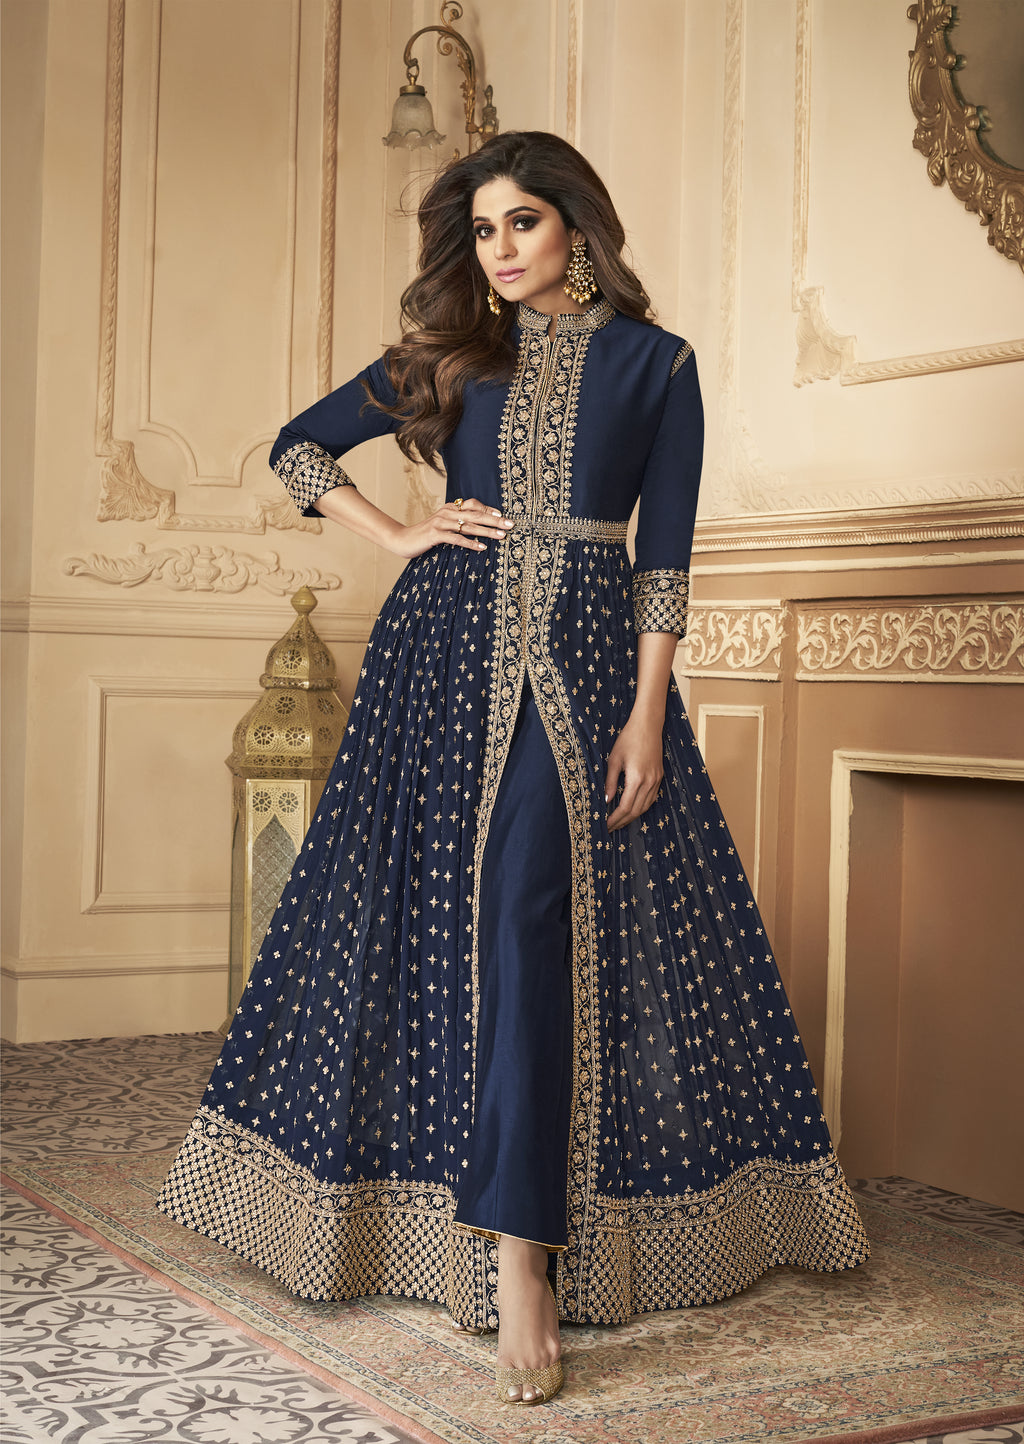 Navy Blue Embroidered Front Slit Salwar Kameez Suit Online